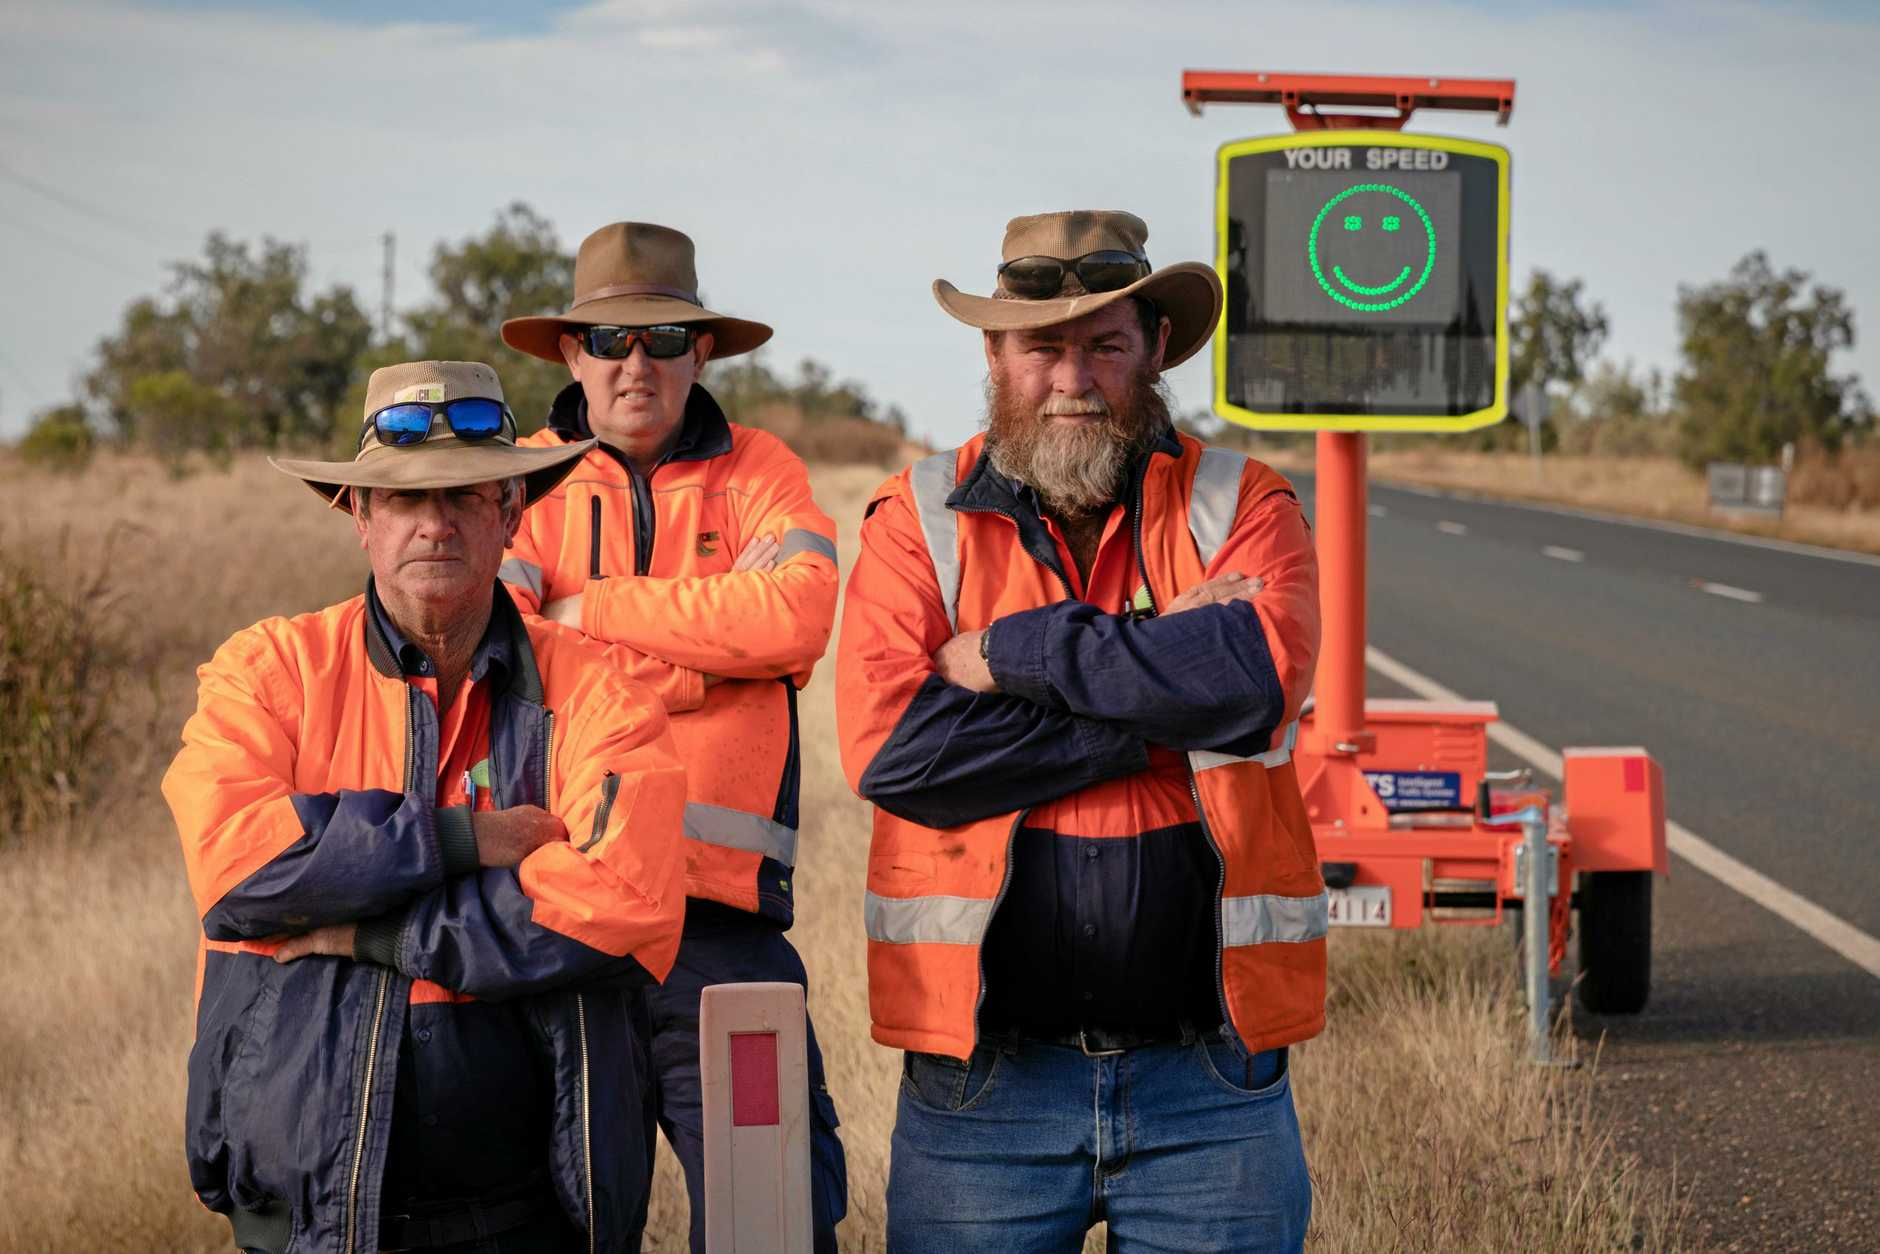 Council's Capella roadwork crew Ash Eddy, Anthony Wells and Greg Irwin think the signs help people to slow down.